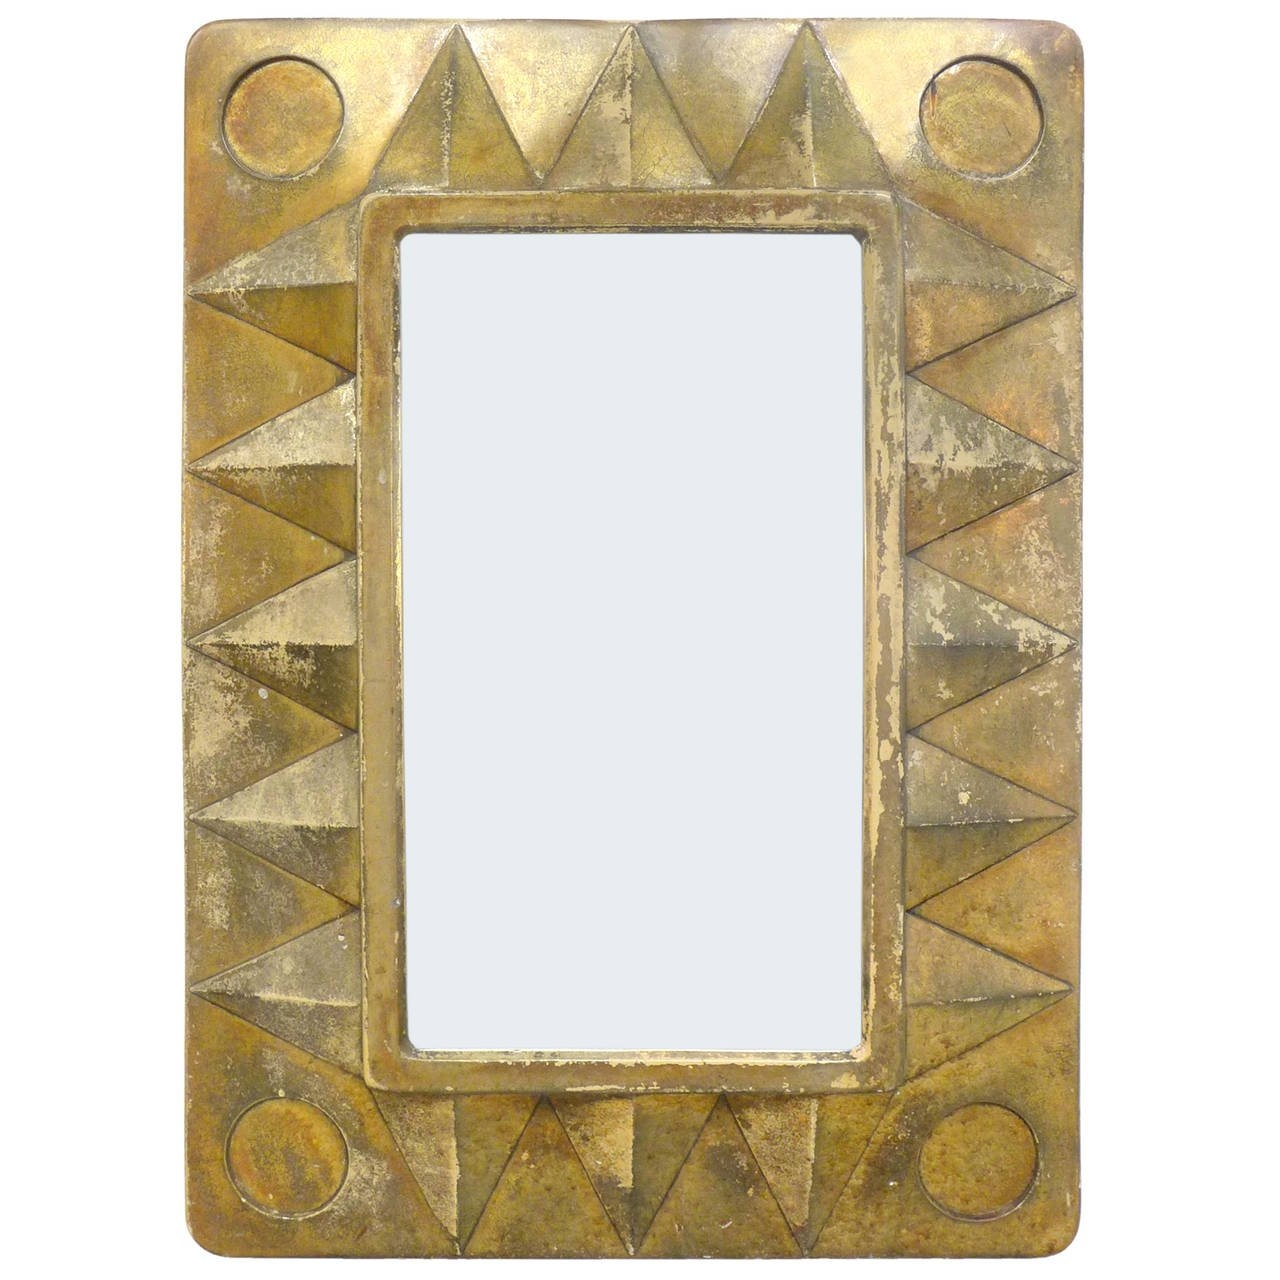 Featured Image of Gilt Framed Mirror